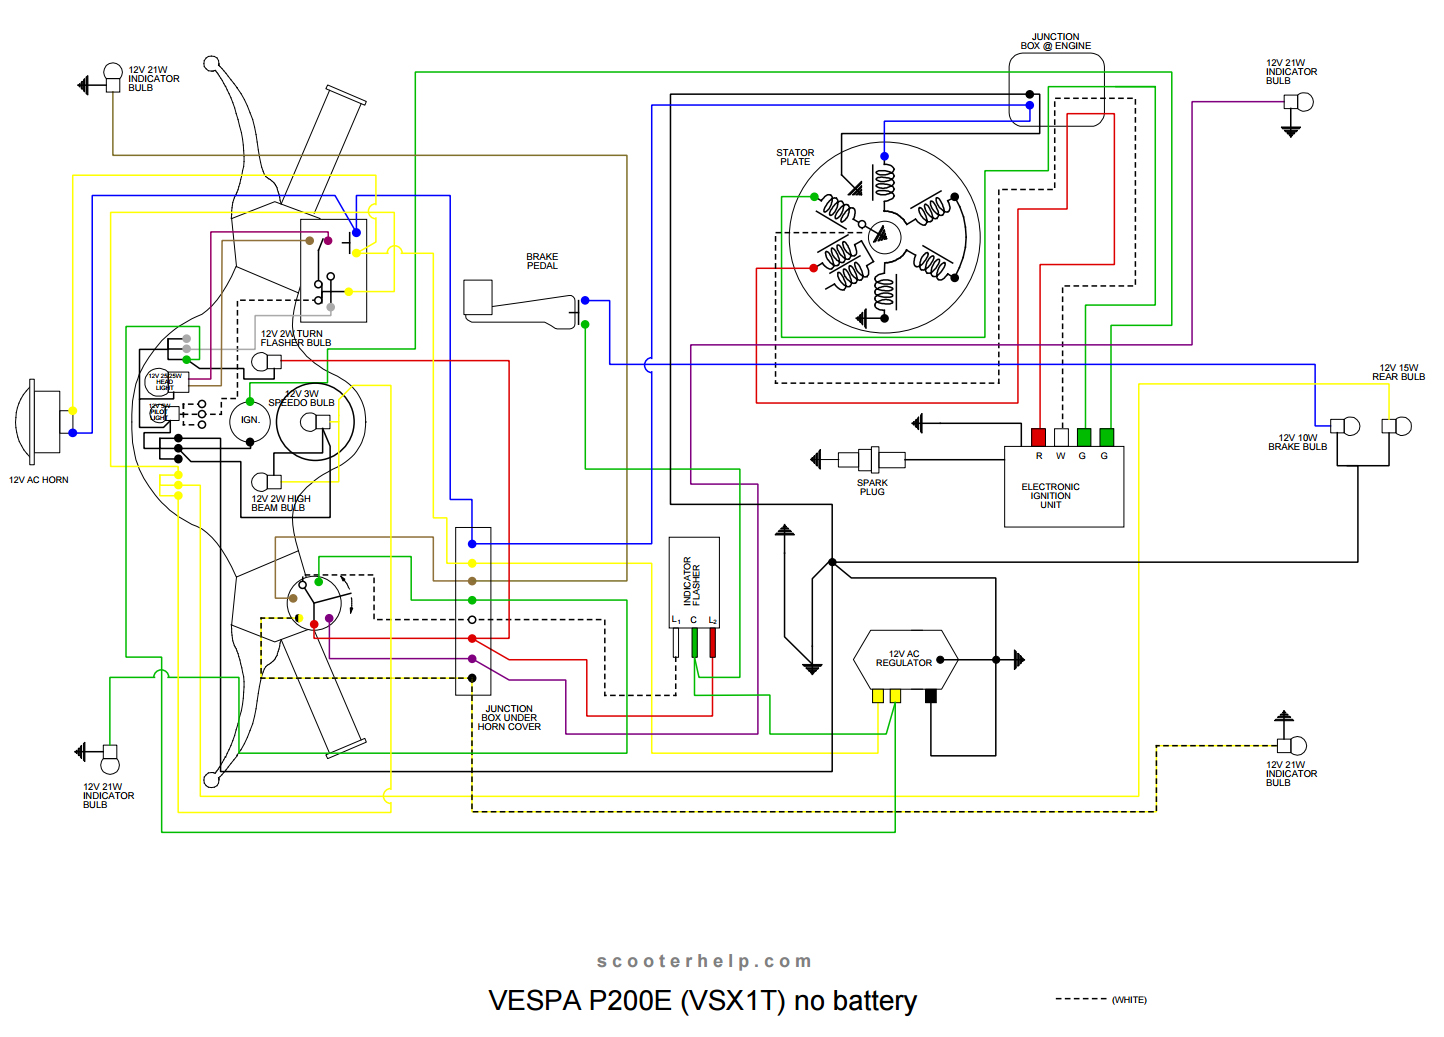 Ciao Vespa Wiring Diagram Starting Know About Lxv Fuse Box Location 1978 Piaggio P200e